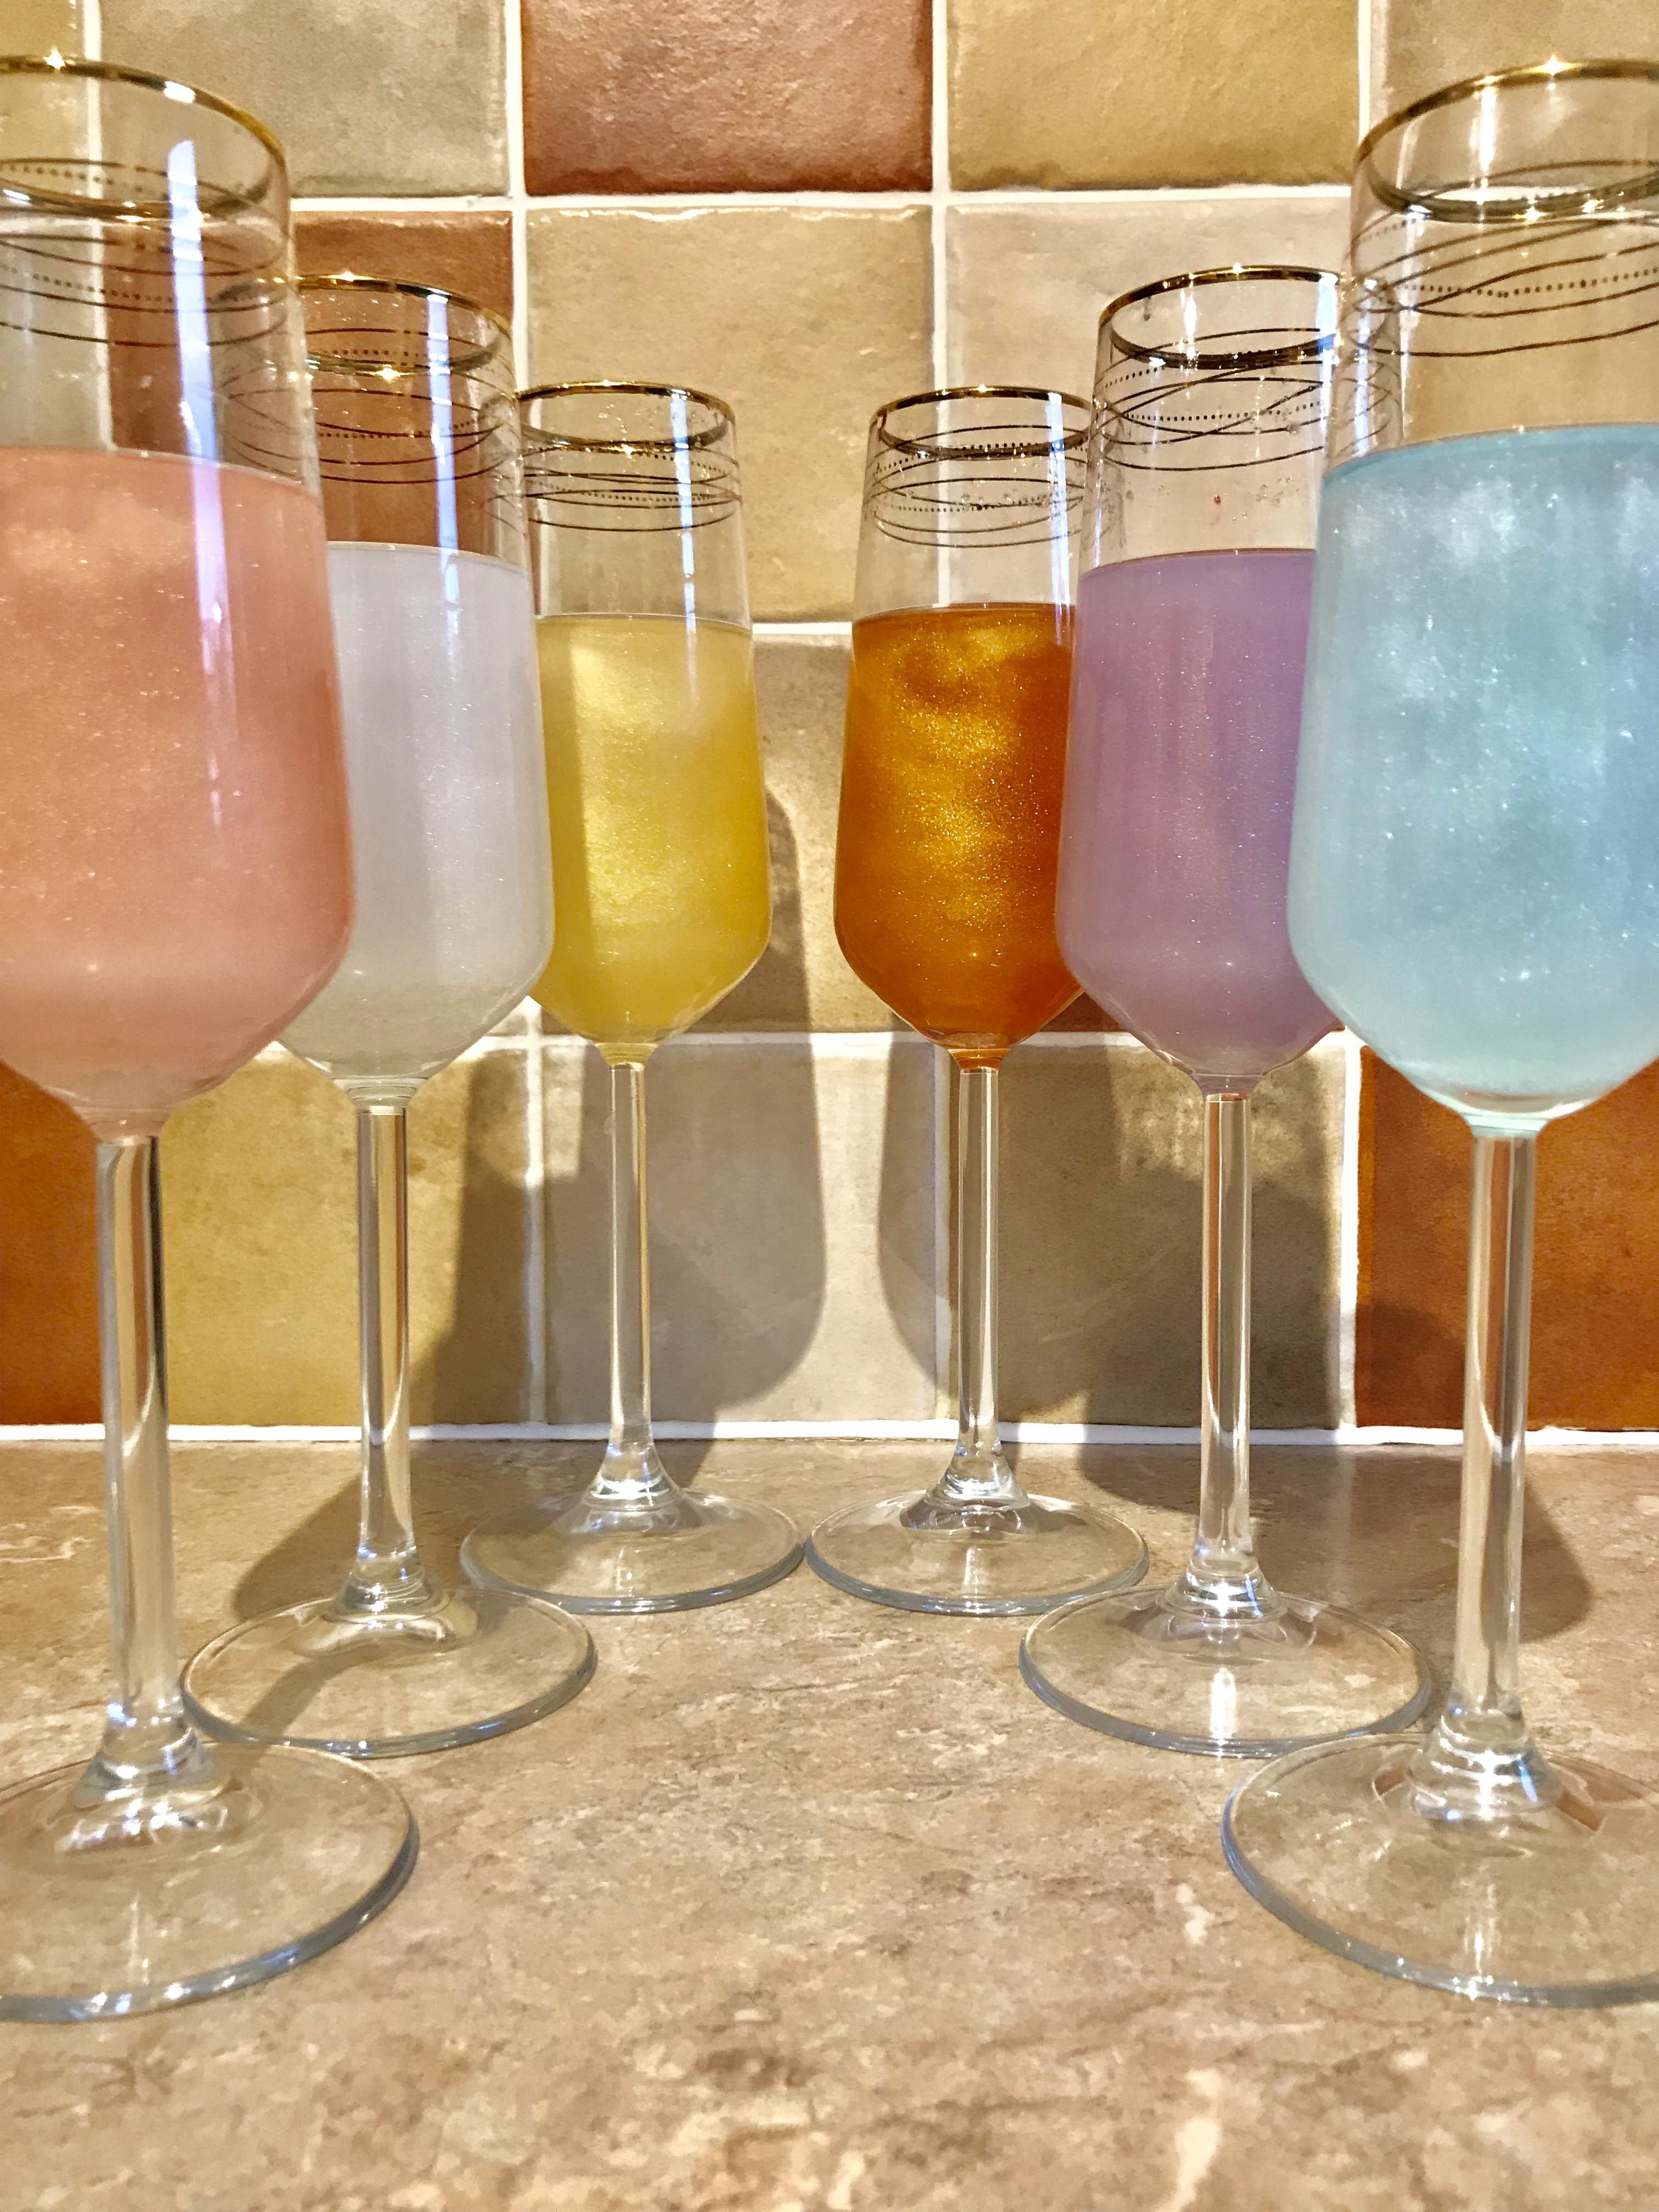 WHITE SPARKLY DRINKS DUST SHIMMER UNICORN PROSECCO COCKTAILS CHRISTMAS GLITTER